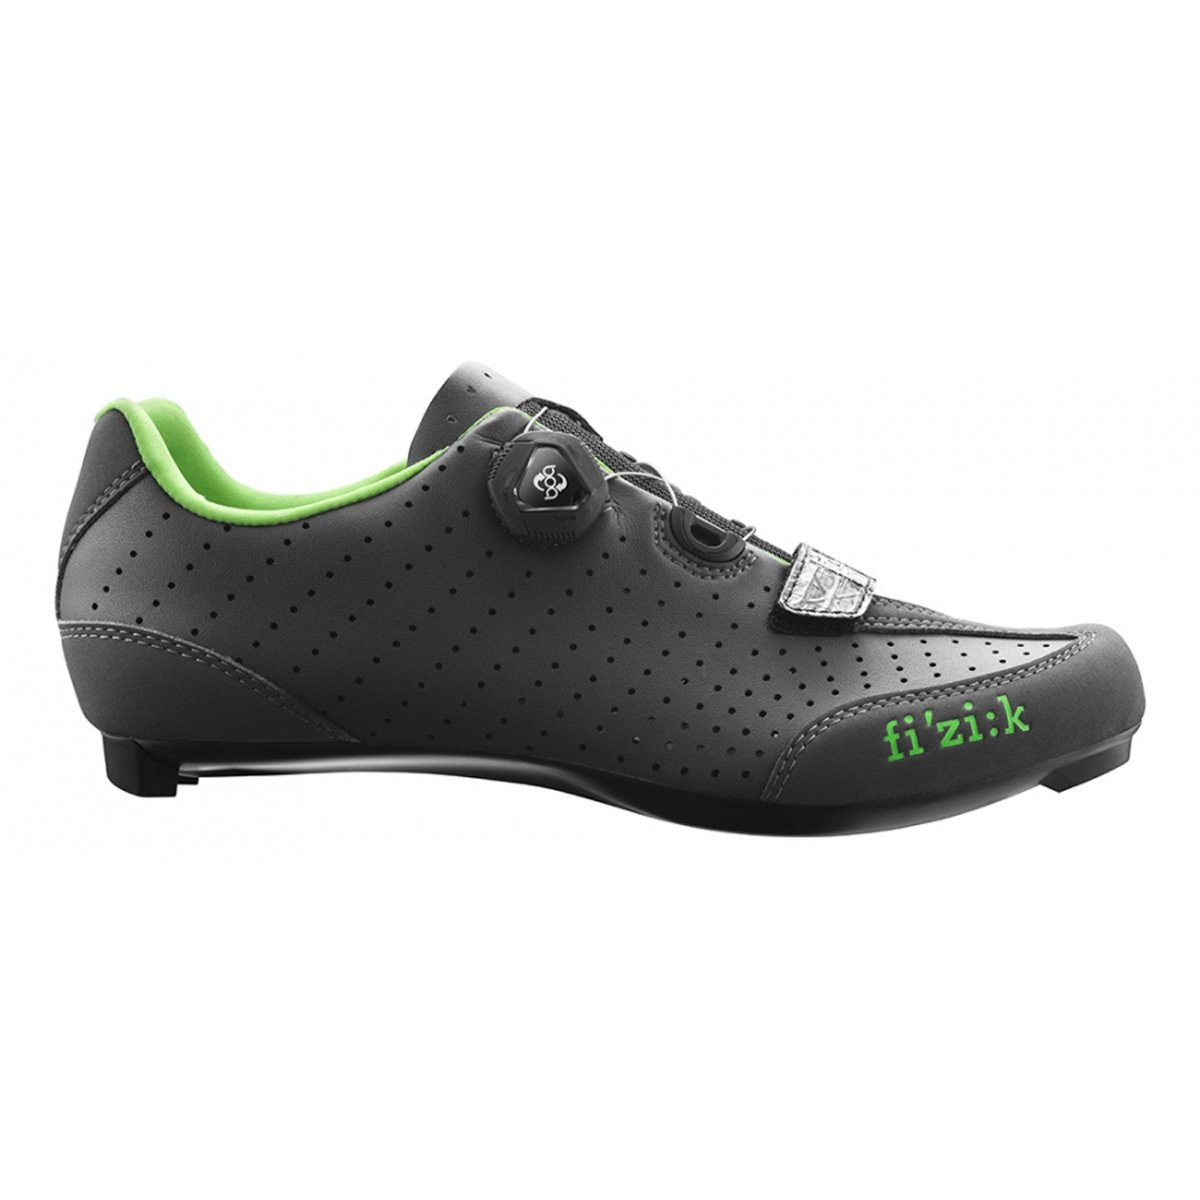 Anthracite//Green 41 Fizik 2016 Mens R3B Uomo Boa Road Sport Cycling Shoes